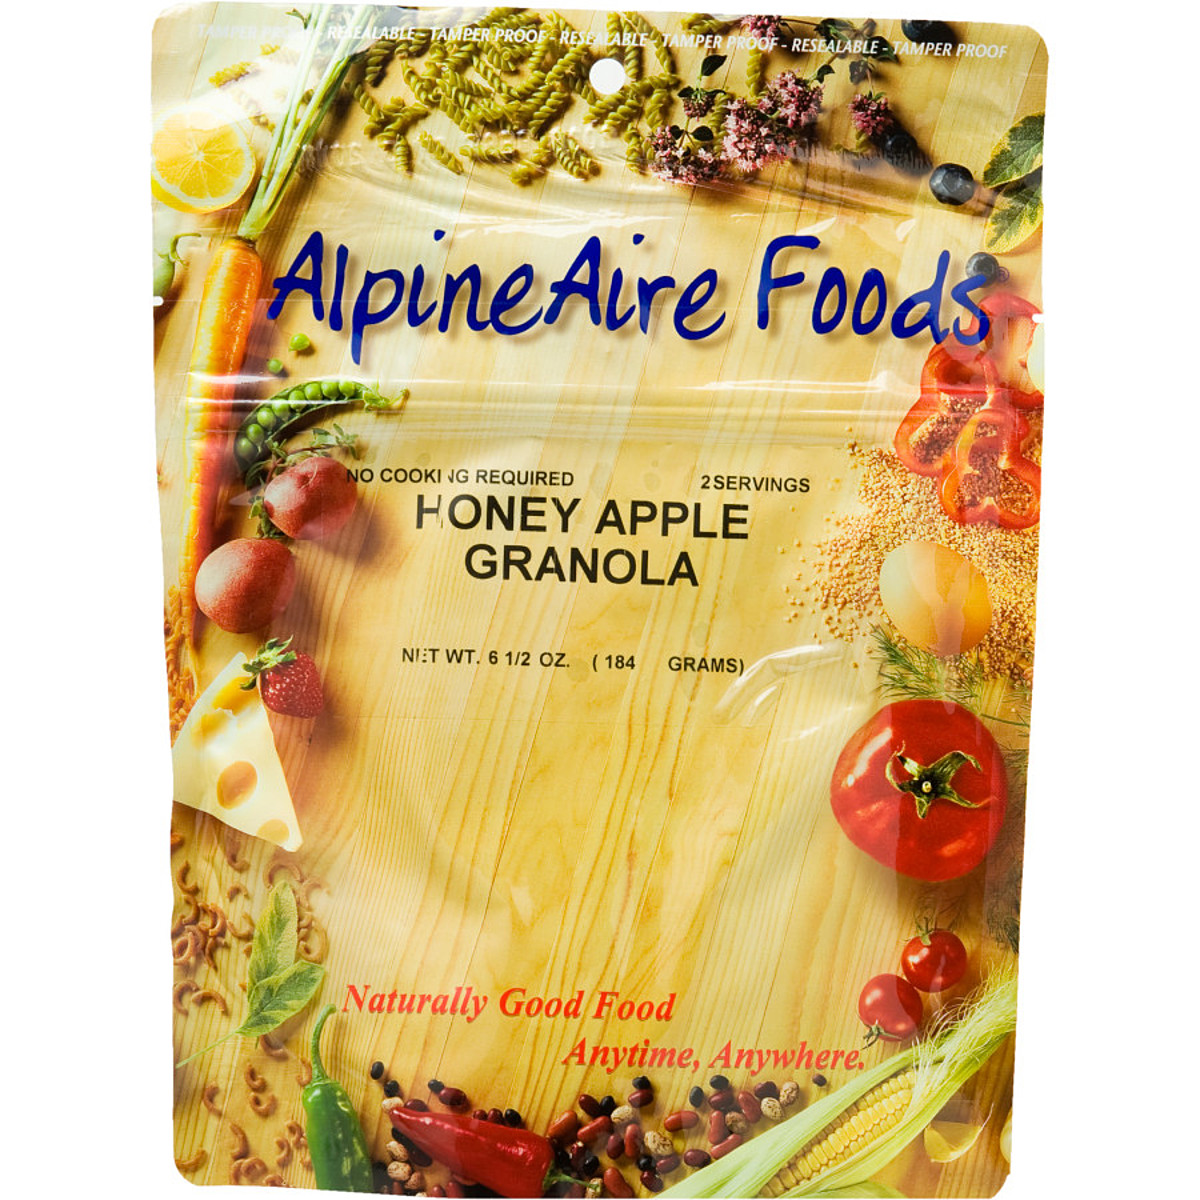 AlpineAire Foods Honey Apple Granola